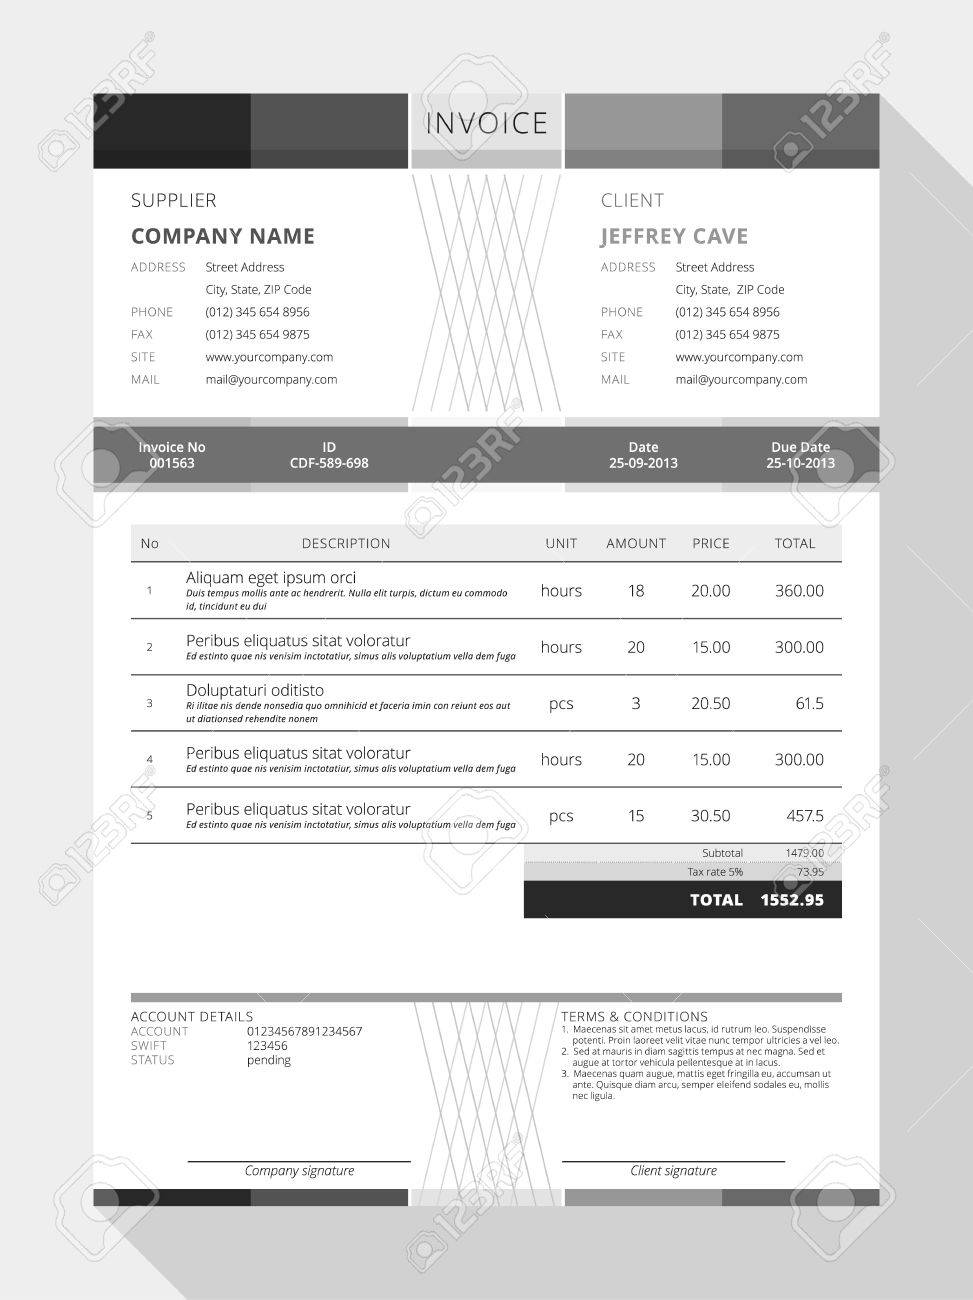 Ebitus  Outstanding Design An Invoice  Professional Graphic Design Invoice  With Lovely Vector Customizable Invoice Form Template Design Vector   Design An Invoice With Alluring How To Create A Fake Receipt Also Personalised Receipt Books In Addition Statement Of Cash Receipts And Disbursements And Print Receipt Form As Well As Custom Cash Receipt Books Additionally Da  Hand Receipt From Happytomco With Ebitus  Lovely Design An Invoice  Professional Graphic Design Invoice  With Alluring Vector Customizable Invoice Form Template Design Vector   Design An Invoice And Outstanding How To Create A Fake Receipt Also Personalised Receipt Books In Addition Statement Of Cash Receipts And Disbursements From Happytomco